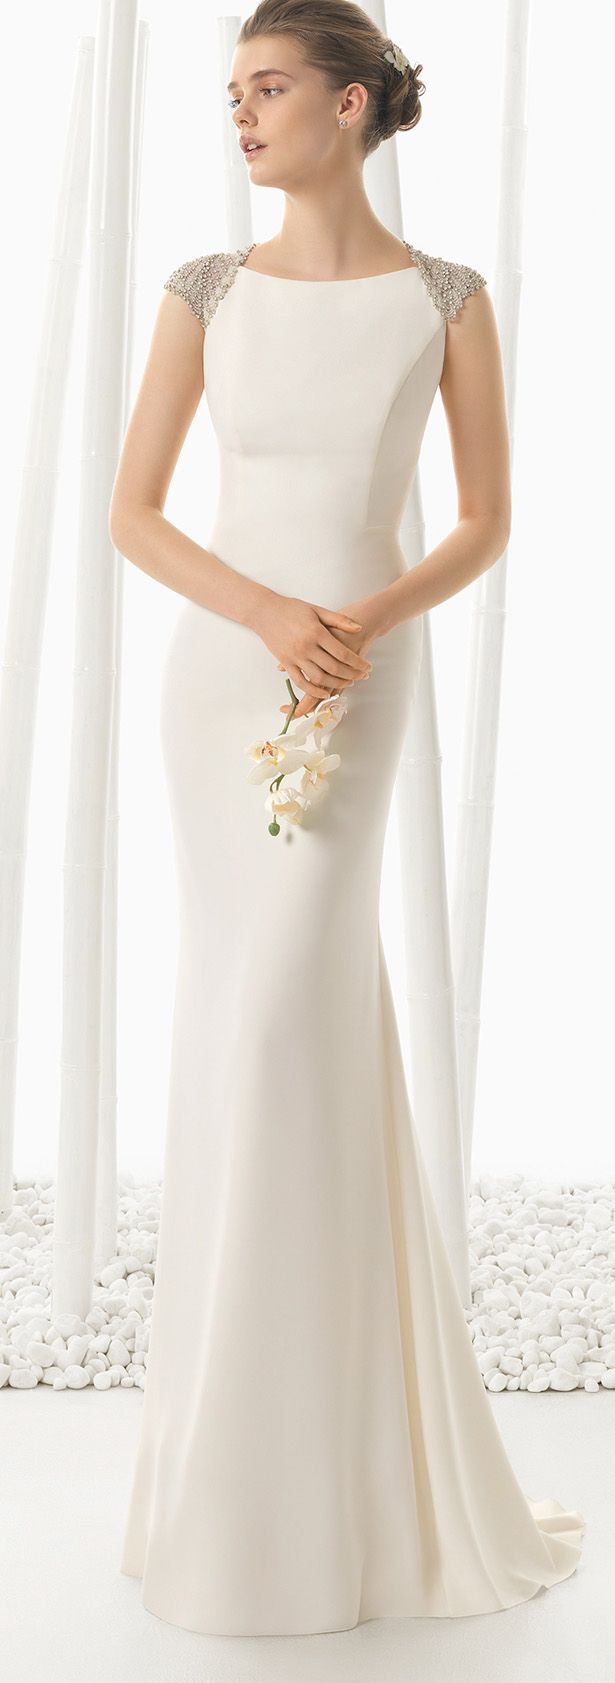 4ae54791acf Simple Classic Elegant Wedding Dresses - Gomes Weine AG